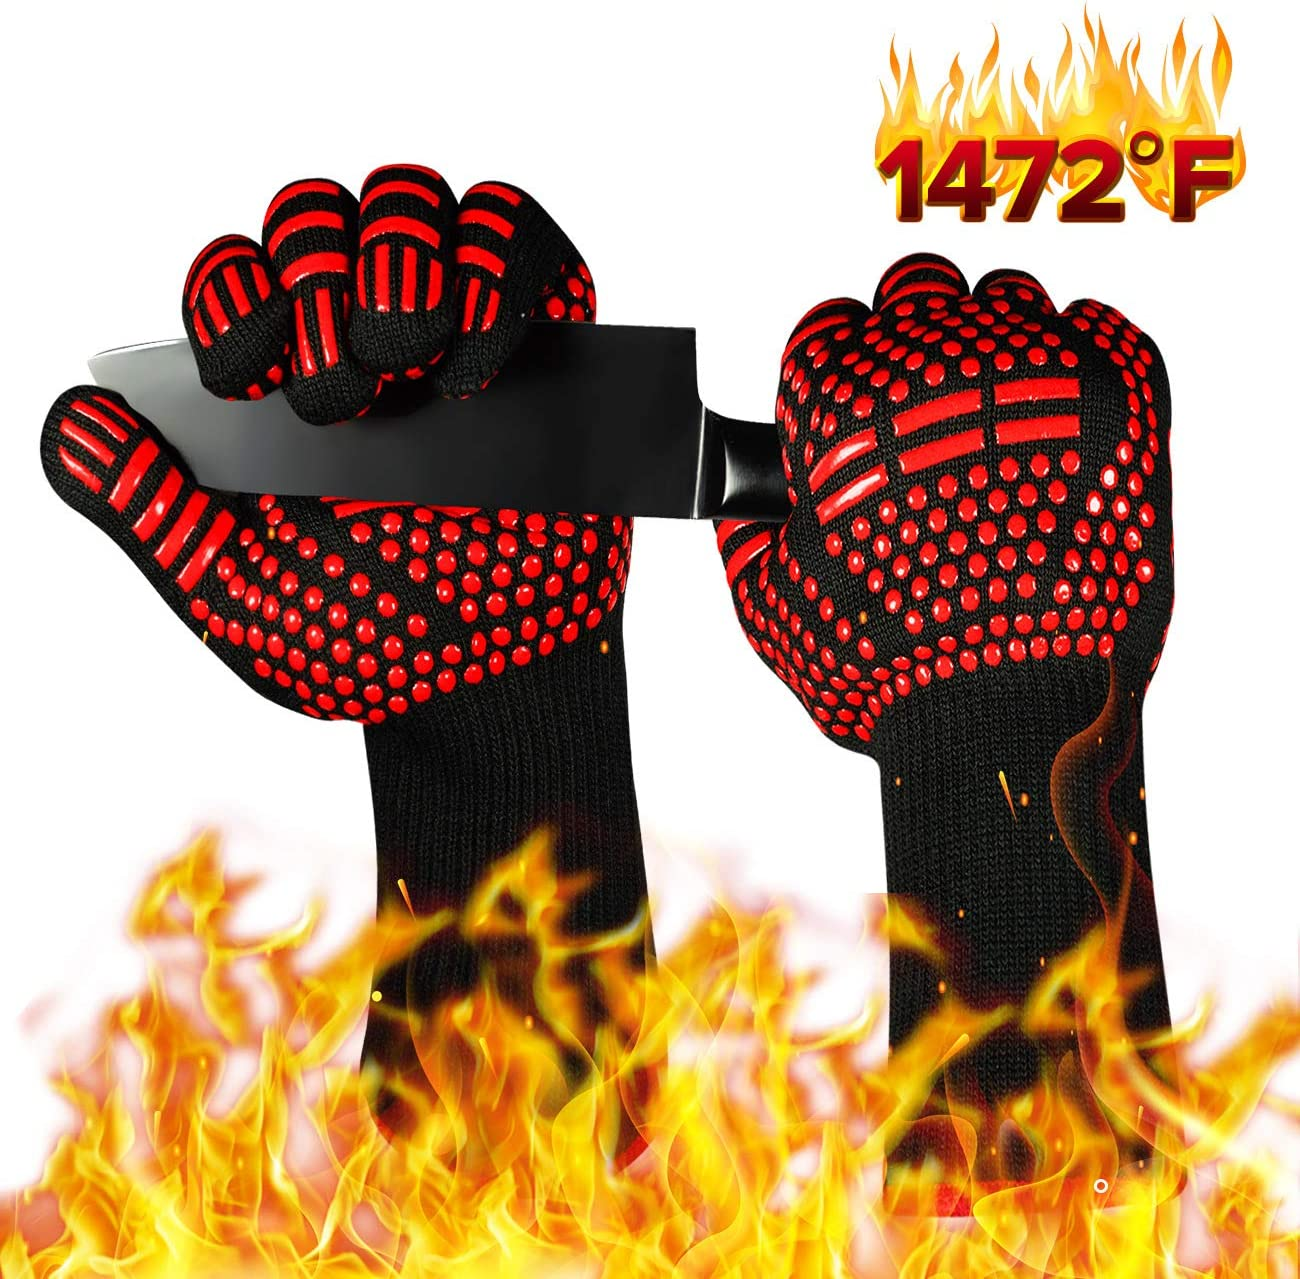 ISSEVE BBQ Gloves 1472°F Extreme Heat Resistant Grill Oven Glove for Barbecue Grilling Cooking Kitchen Baking Welding 13.5